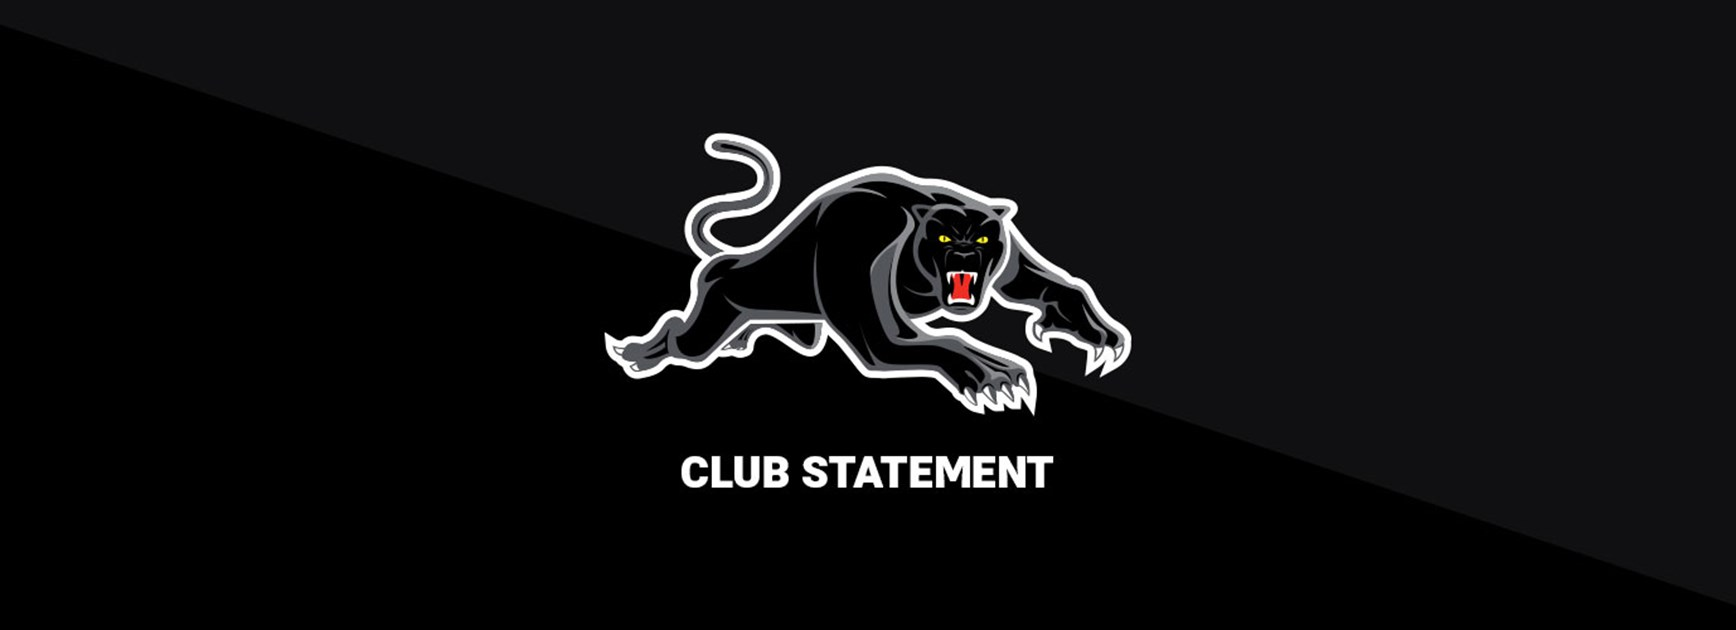 Club Statement: Nathan Cleary, Tyrone May